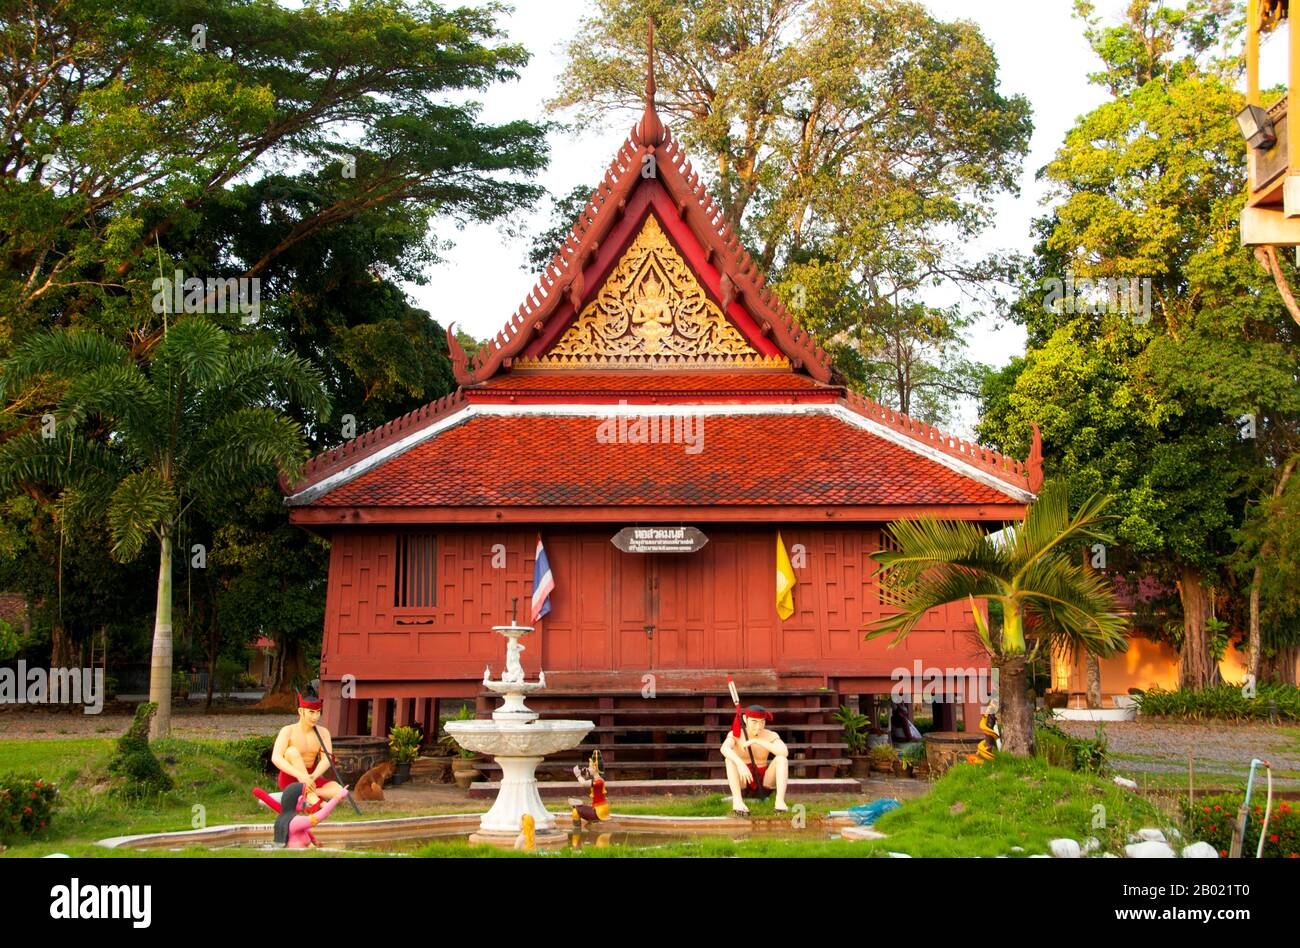 Wat Plai Klong, also known as Wat Buppharam, was built in 1652 (late Ayutthaya period) during the reign of King Prasat Thong (r. 1629 - 1656). It is the oldest temple in Trat. Stock Photo